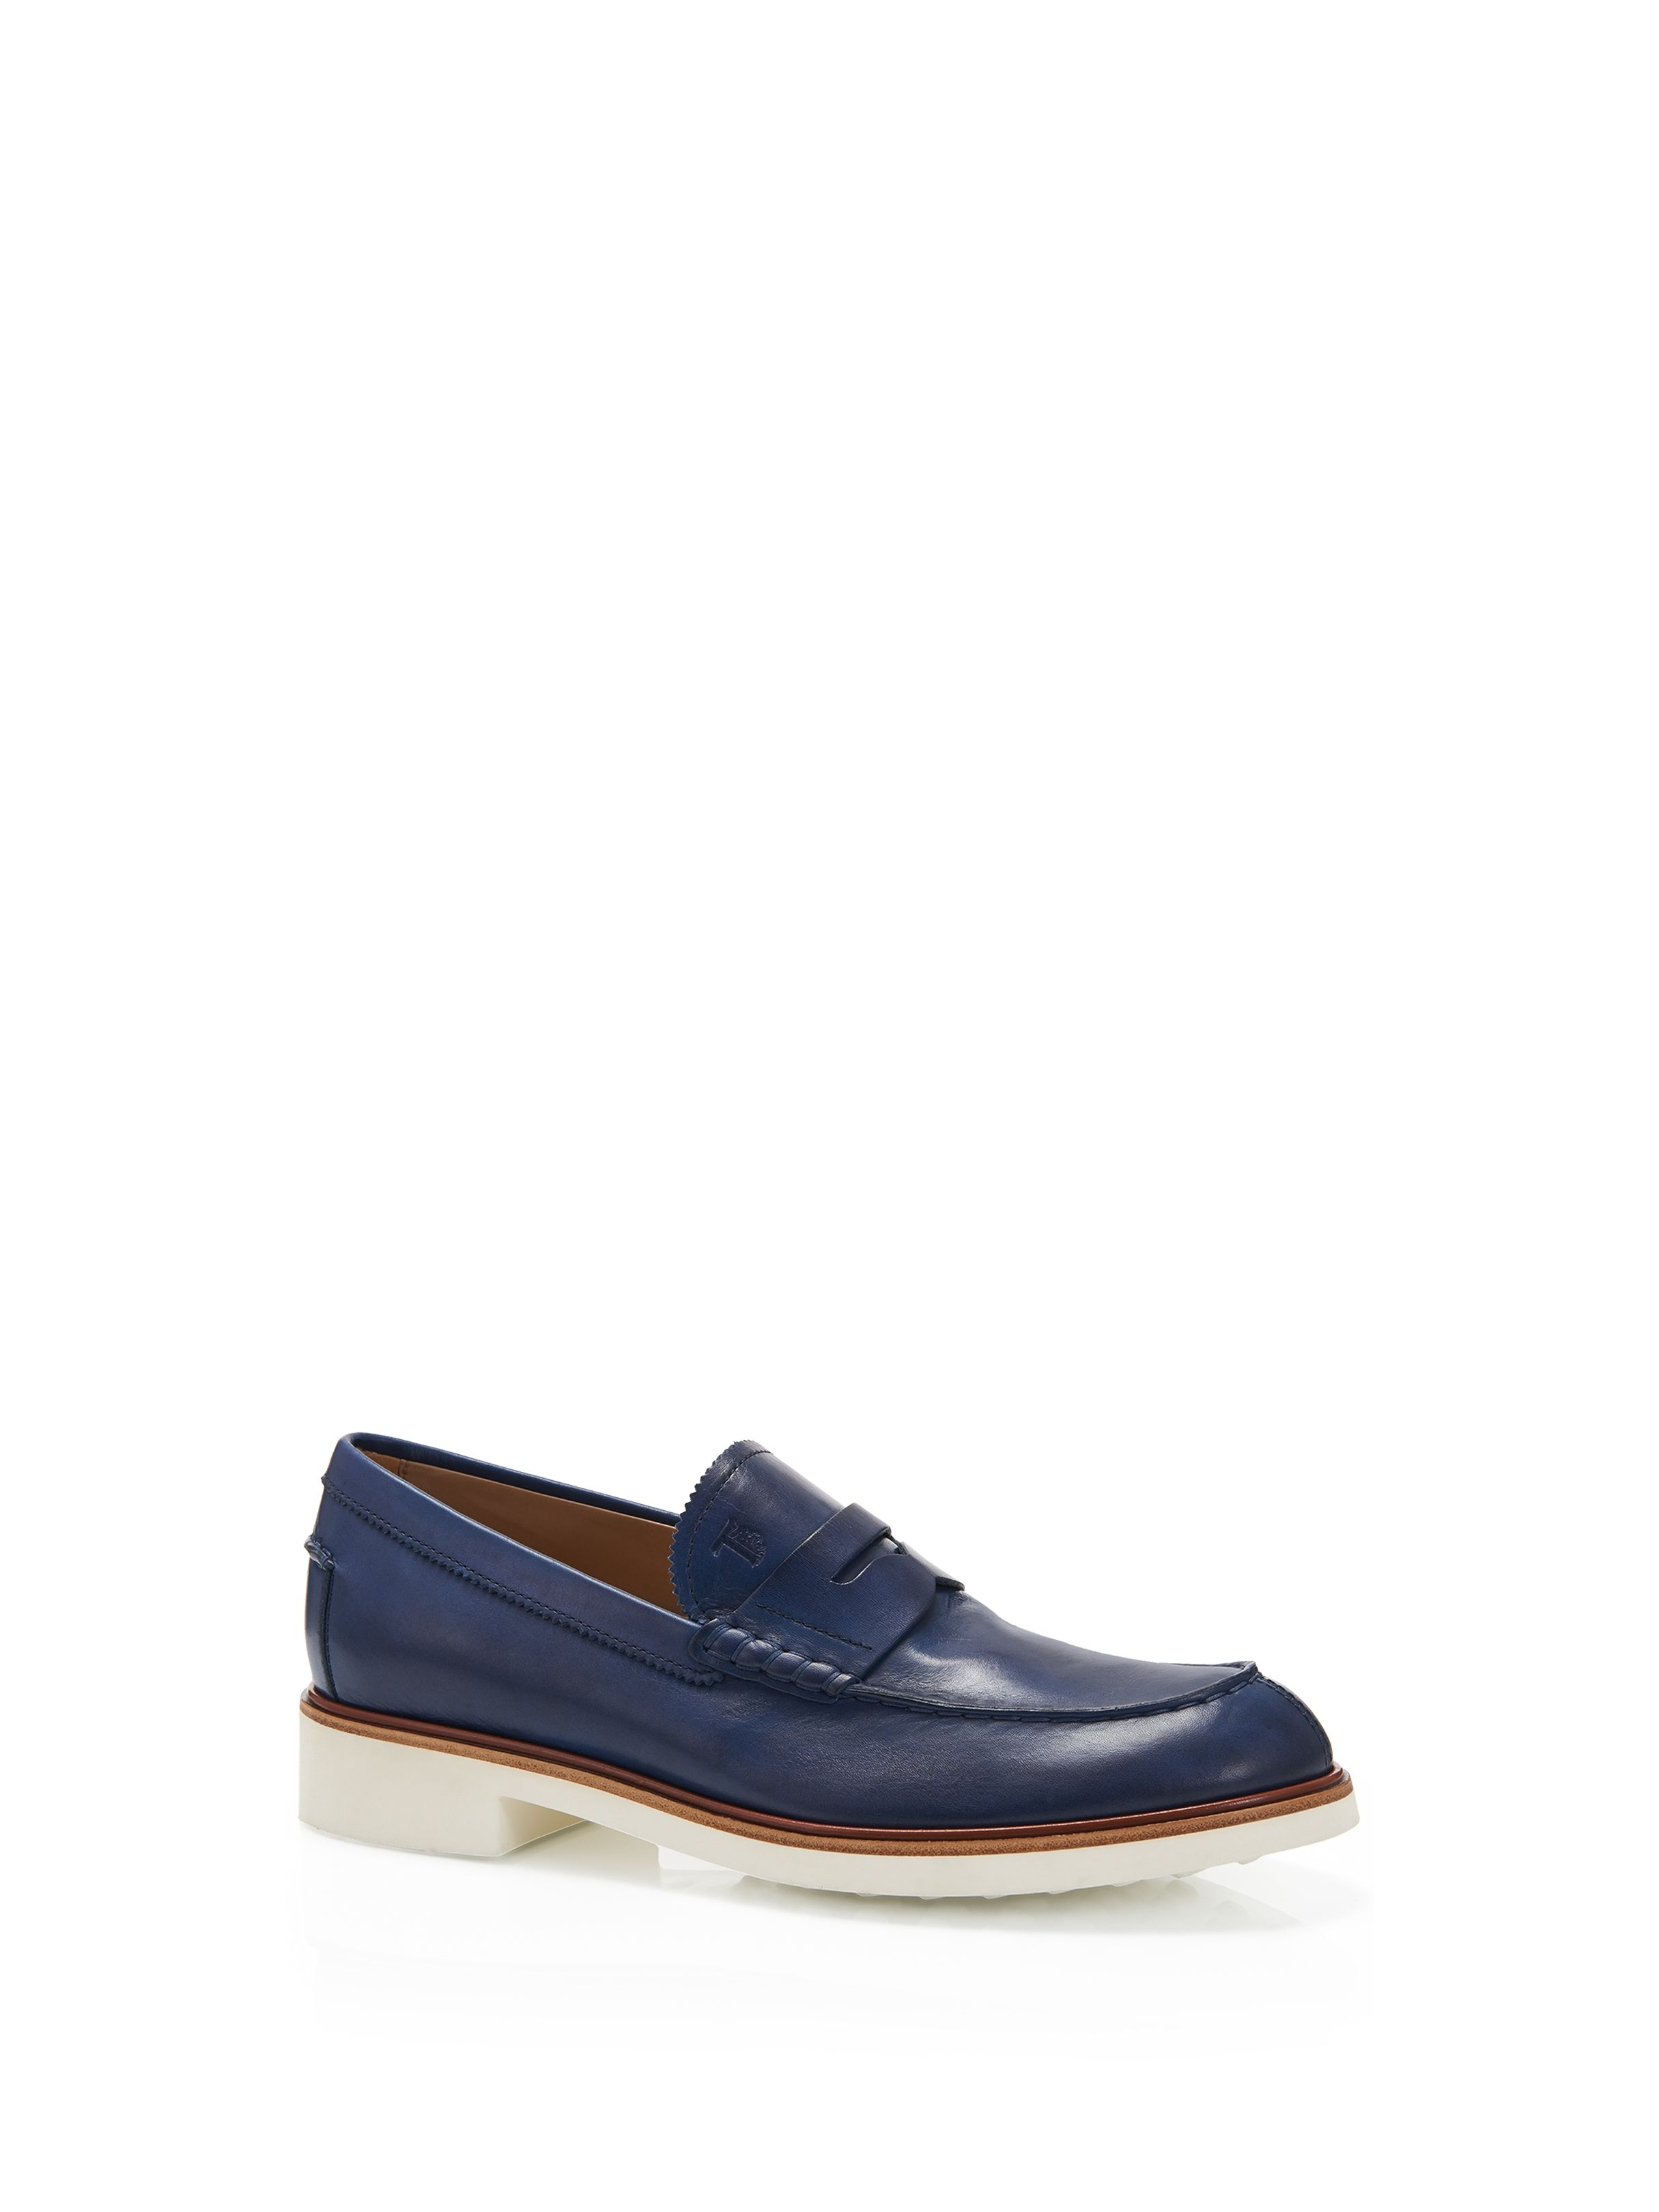 77afacf2eda2 Tod s - Mocassino In Pelle - XXM0TD00010D90U803 - Soft leather penny  loafers featuring a natural-